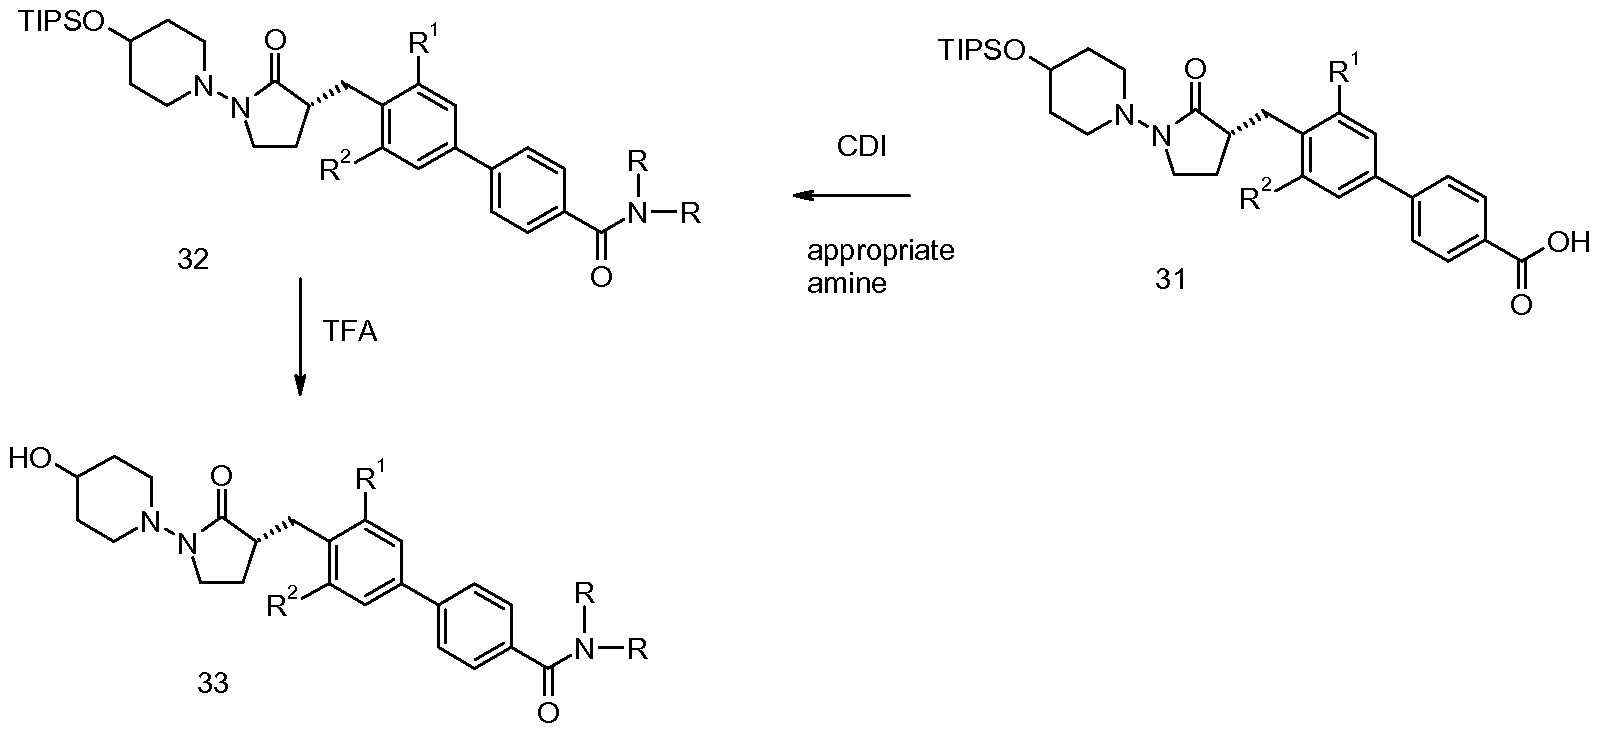 11 beta-hydroxysteroid dehydrogenase type 1 and obesity